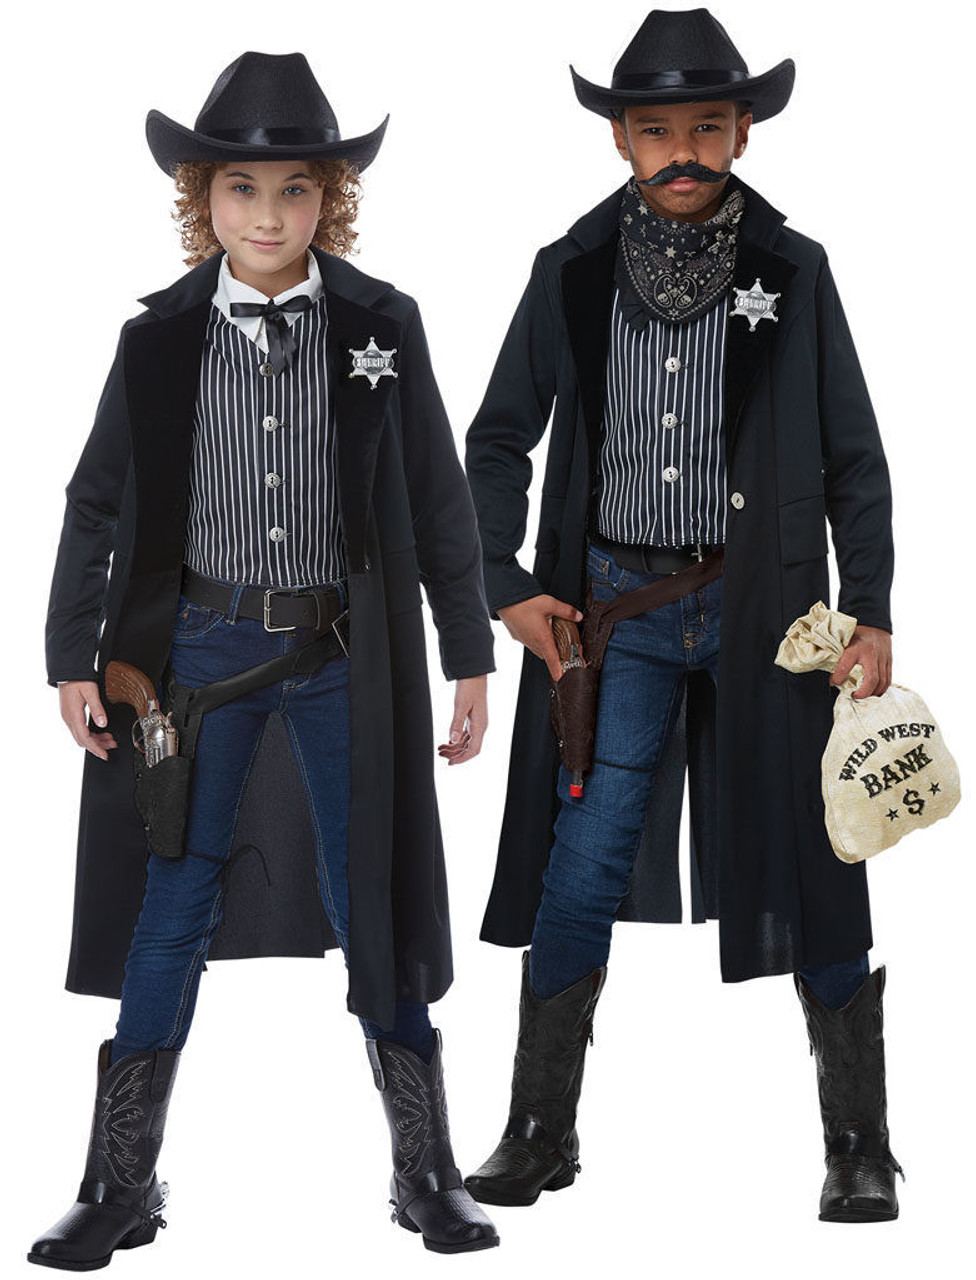 Halloween Costumes For Kidsboys.California Costumes Wild West Sheriff Outlaw Child Boys Halloween Costume 00605